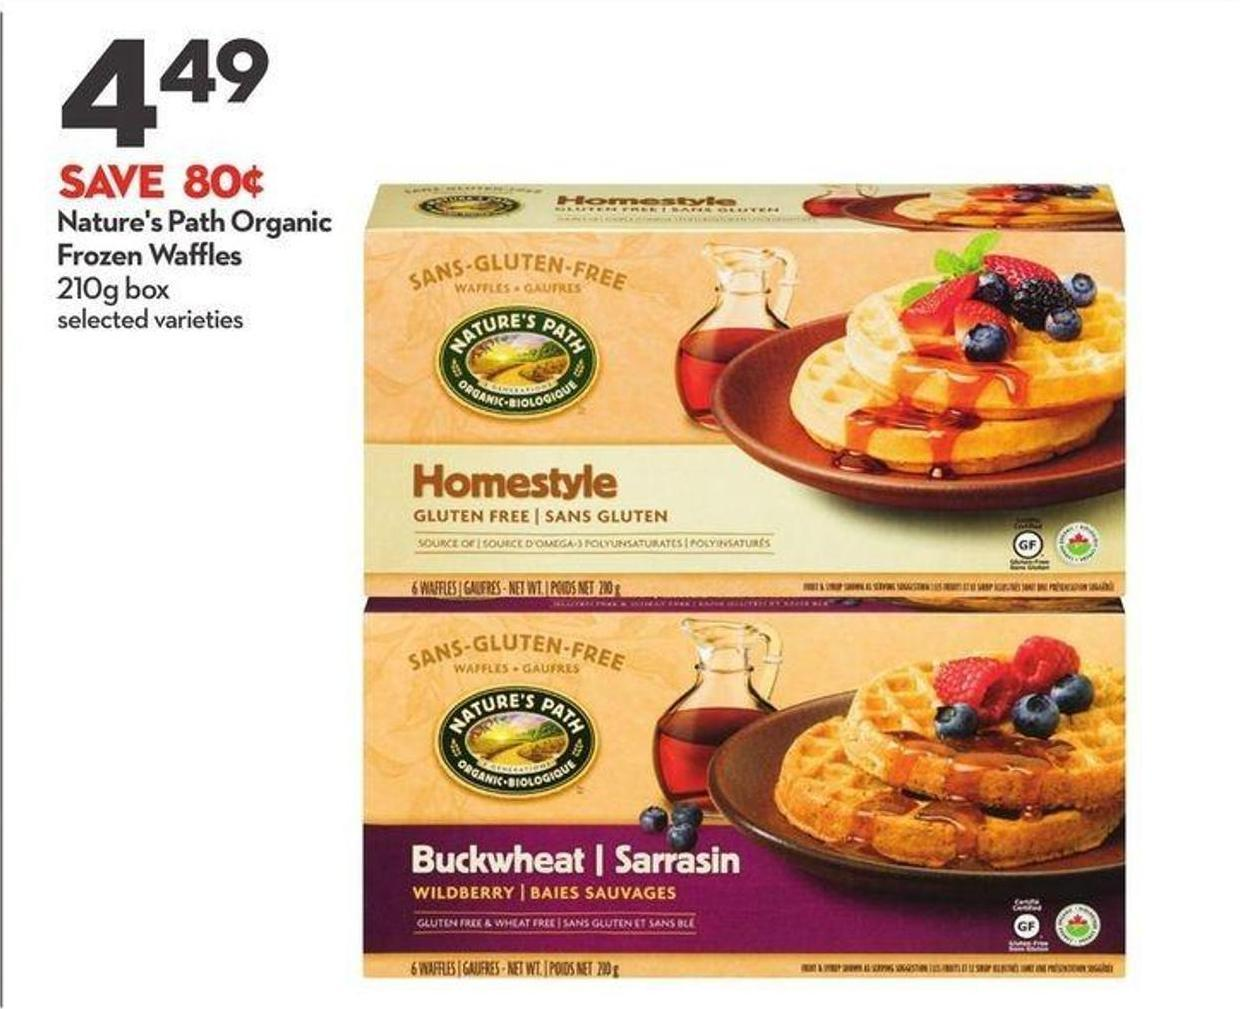 Nature's Path Organic Frozen Waffles